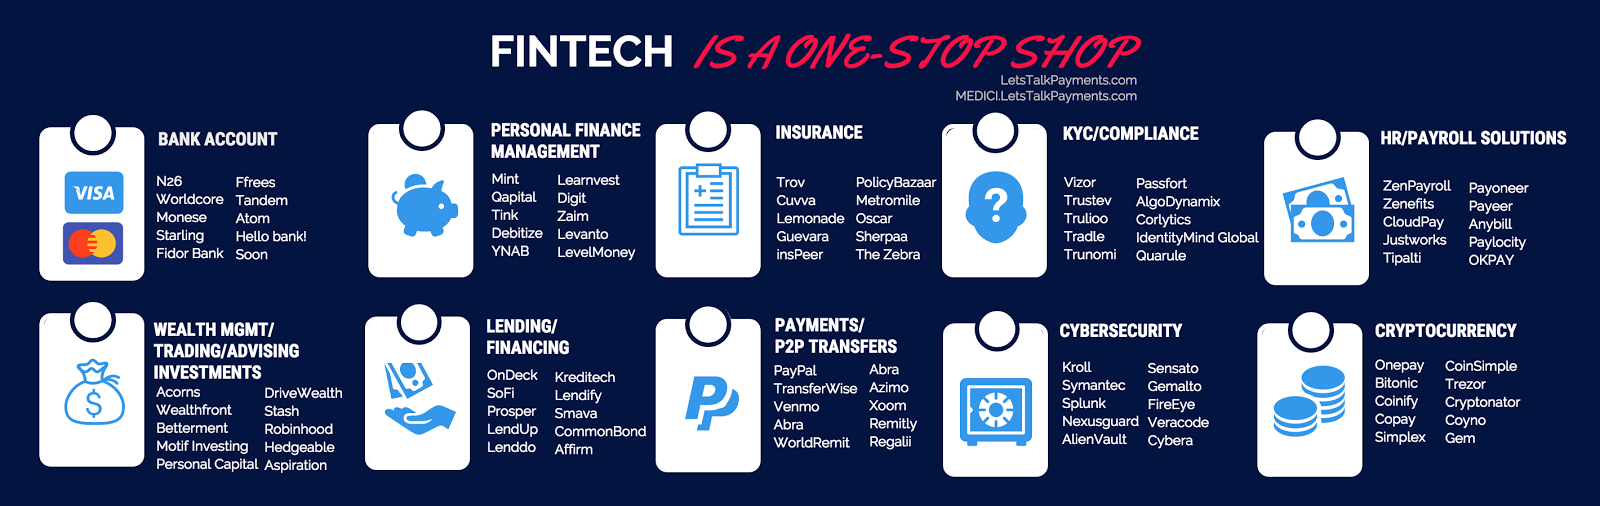 FinTech Is a One-Stop Shop